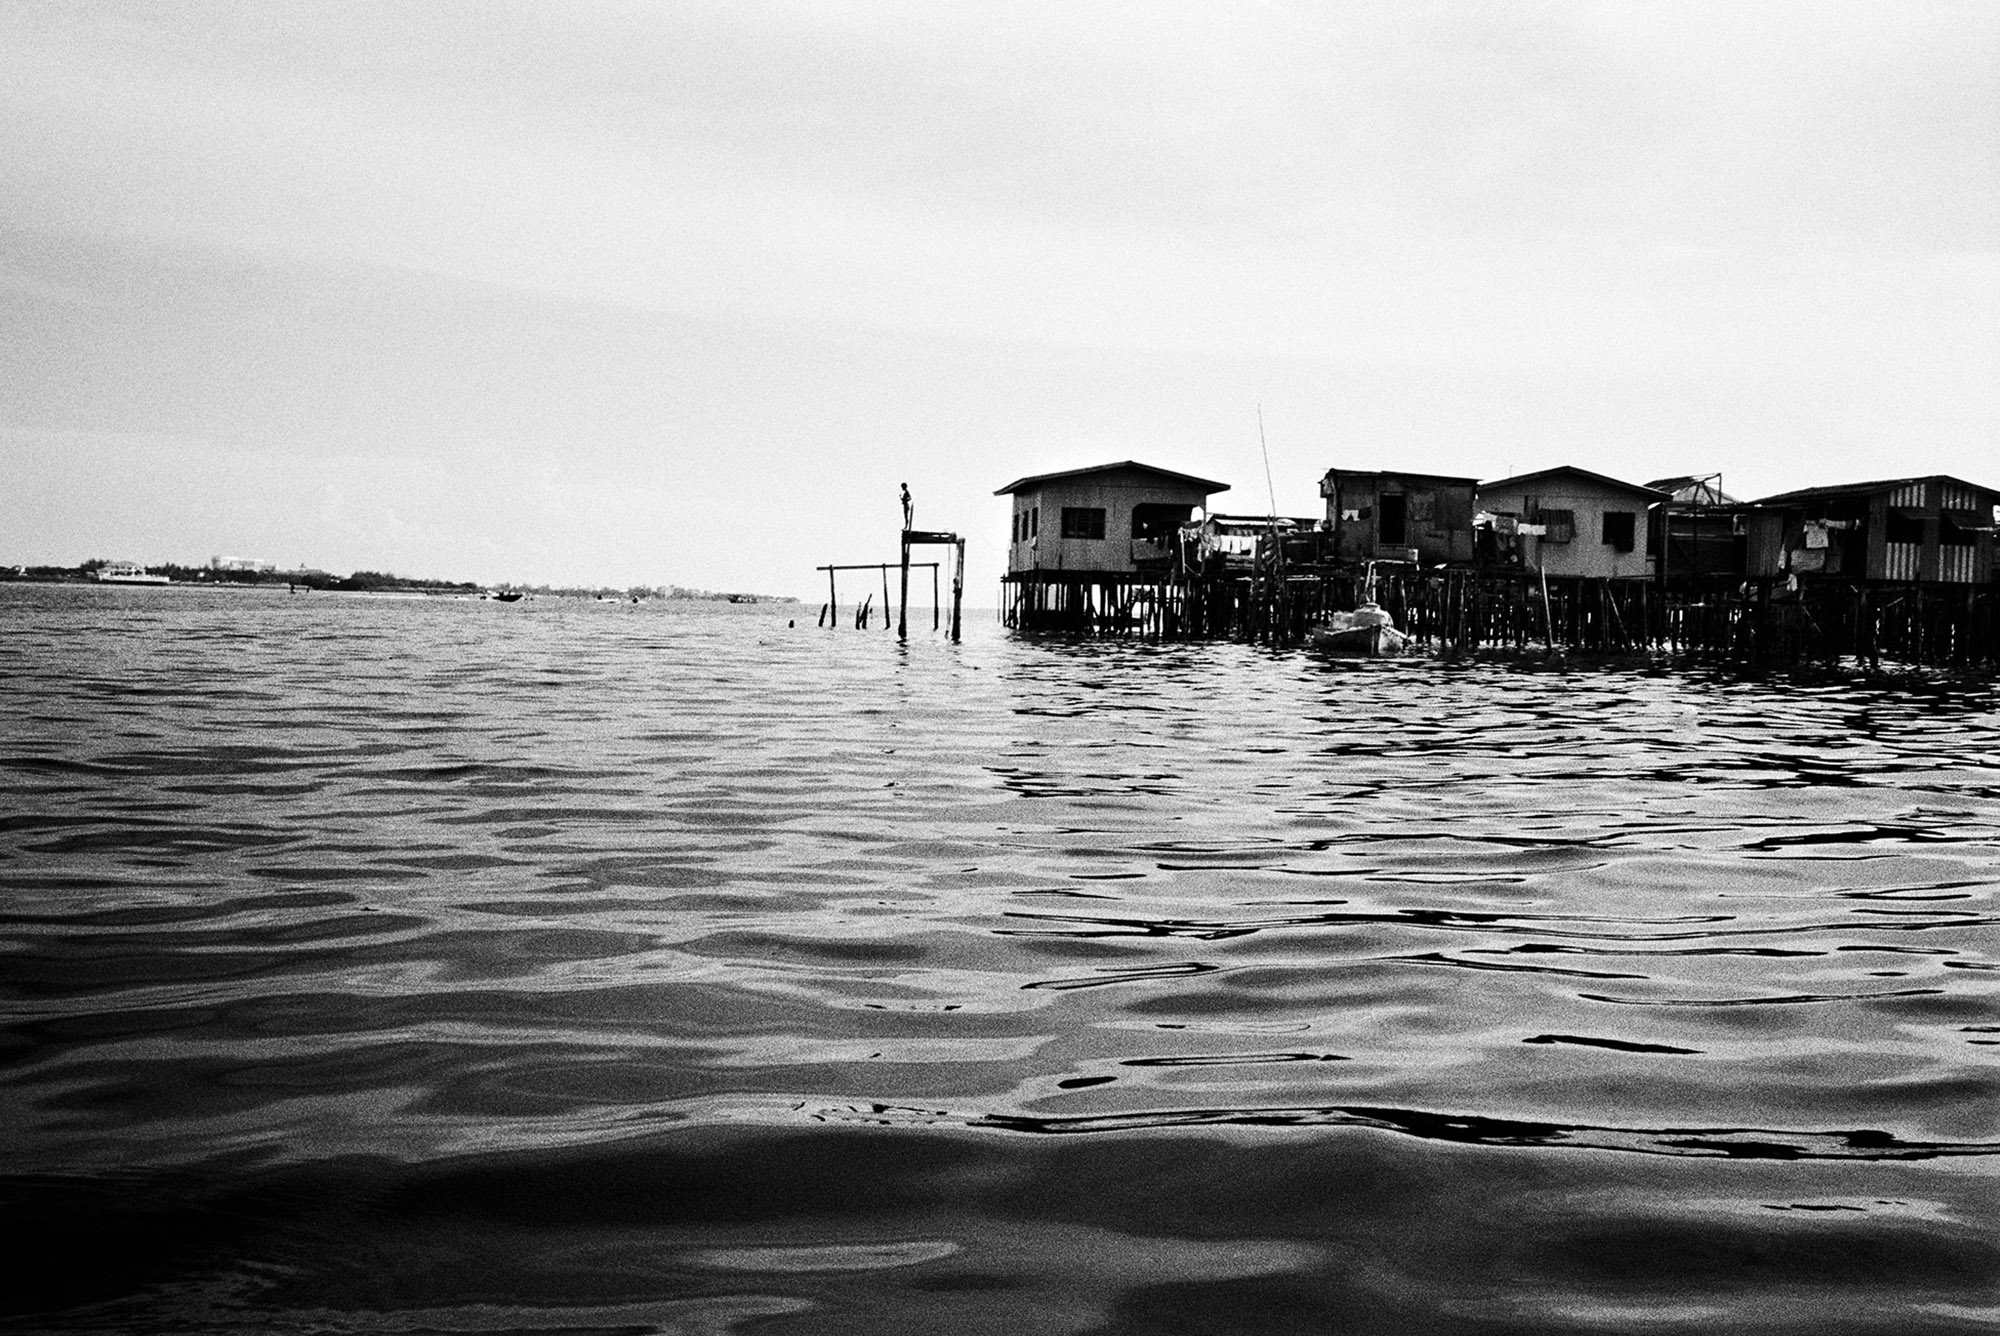 Many stateless children live in Pulau Gaya, where migrants have created a floating slum on the island across the strait from Kota Kinabalu.